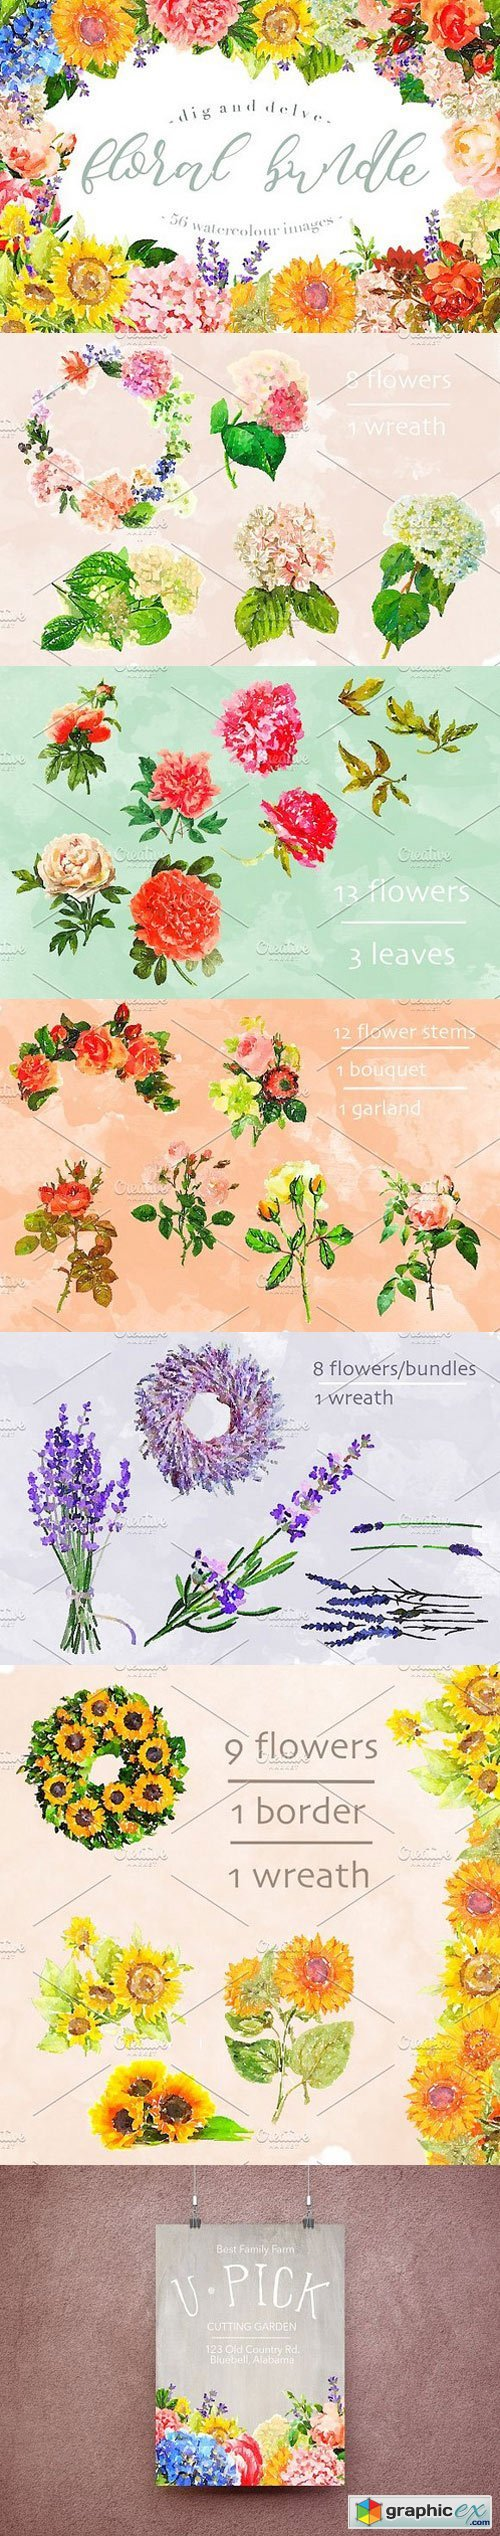 Watercolour Floral Bundle